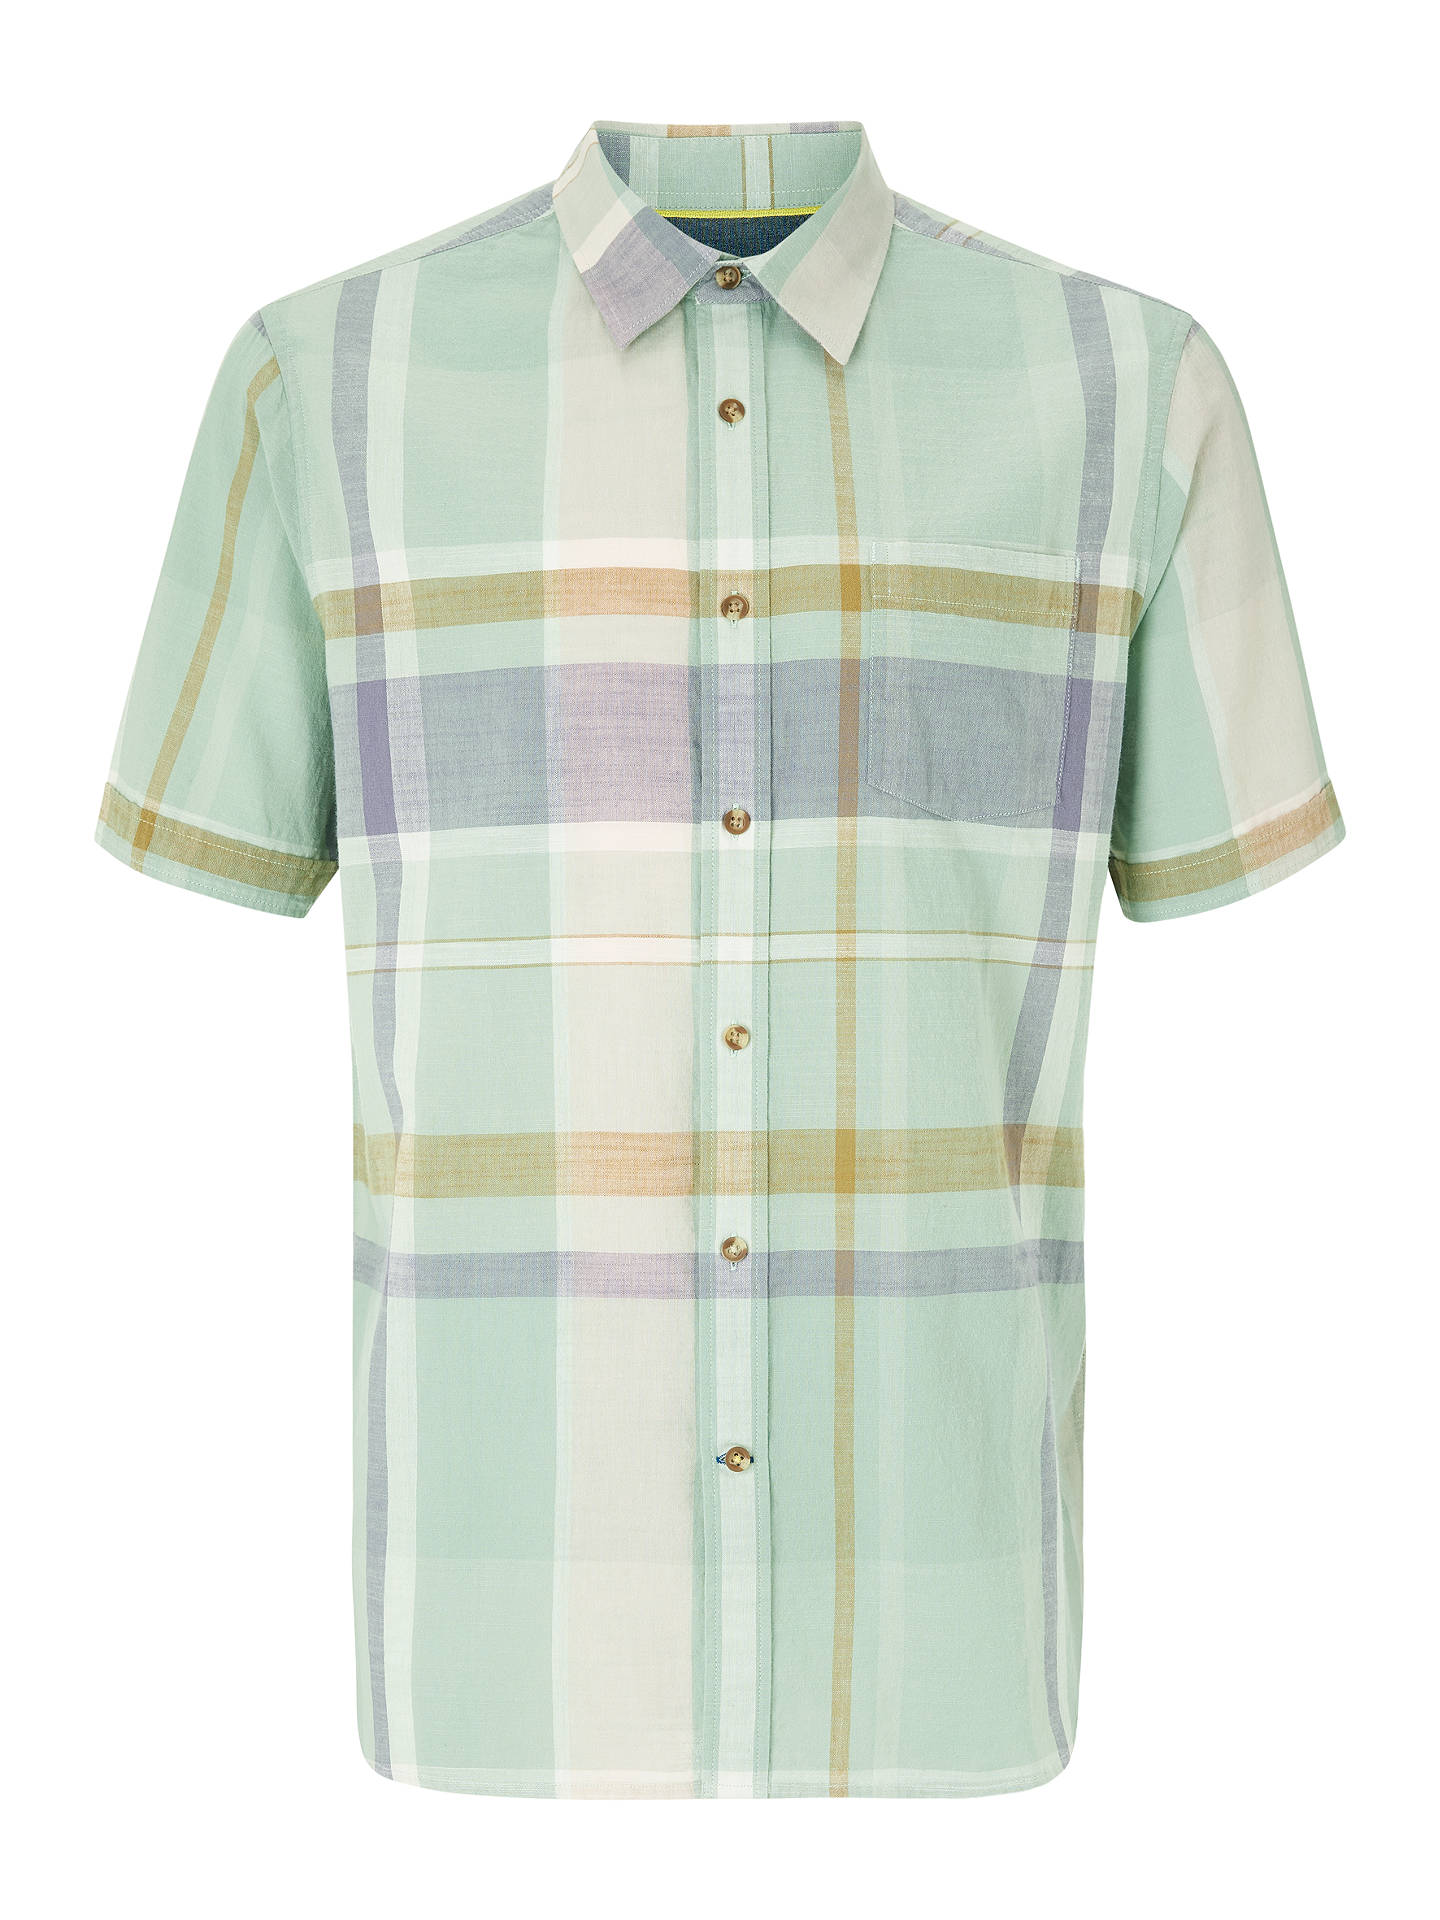 BuyJohn Lewis & Partners Connell Large Scale Check Short Sleeve Shirt, Green/Blue, S Online at johnlewis.com